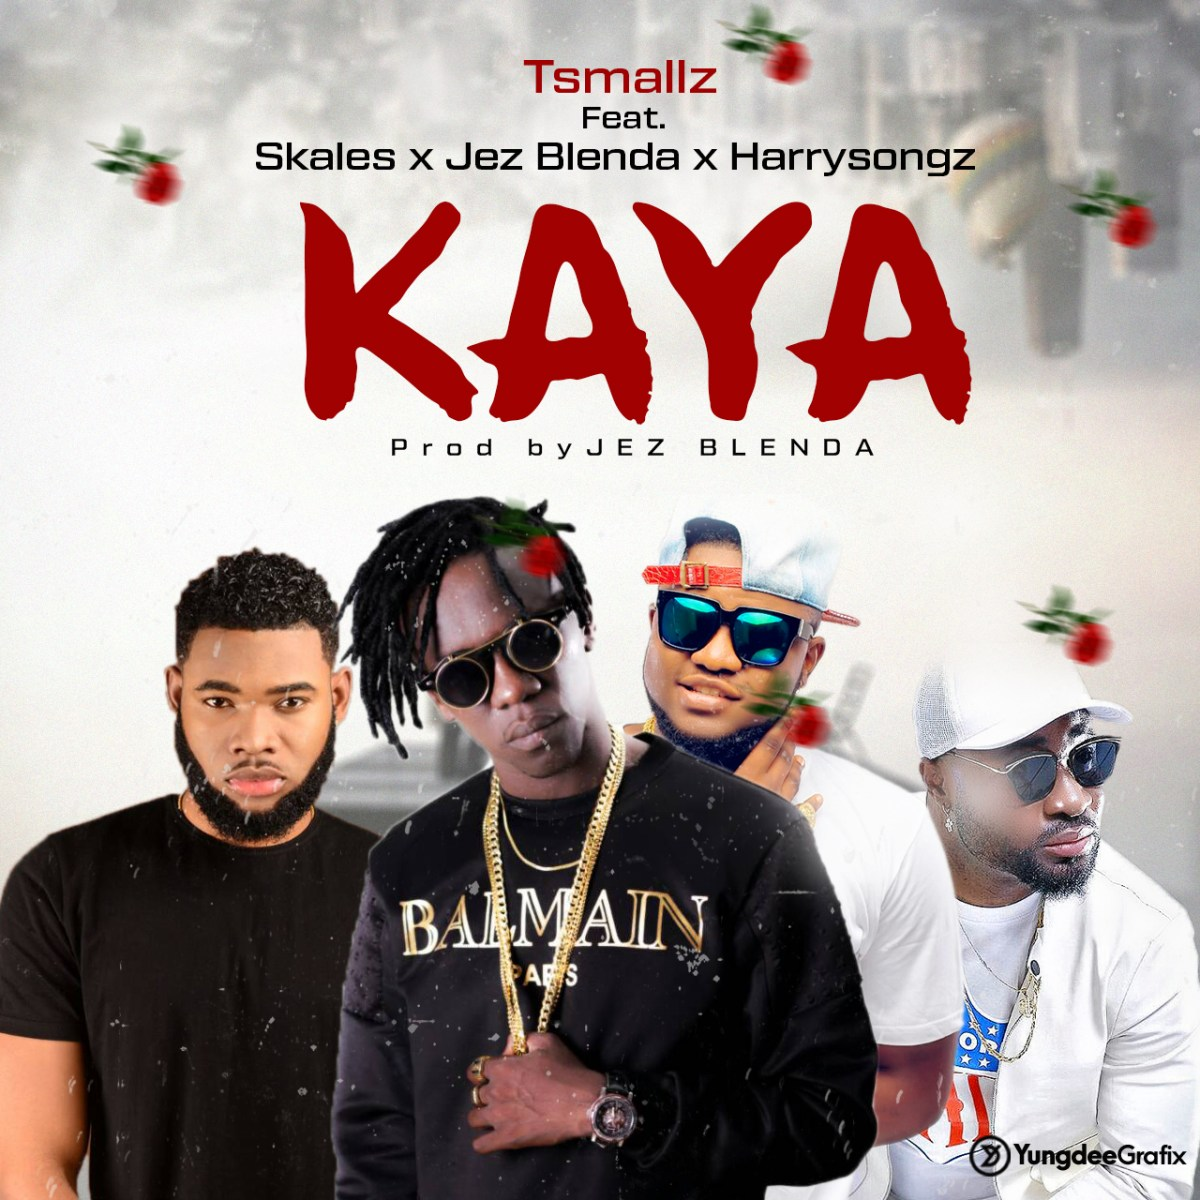 TSMALLZ FT JEZ BLENDA-SKALES-HARRYSONG - KAYA 2(1)